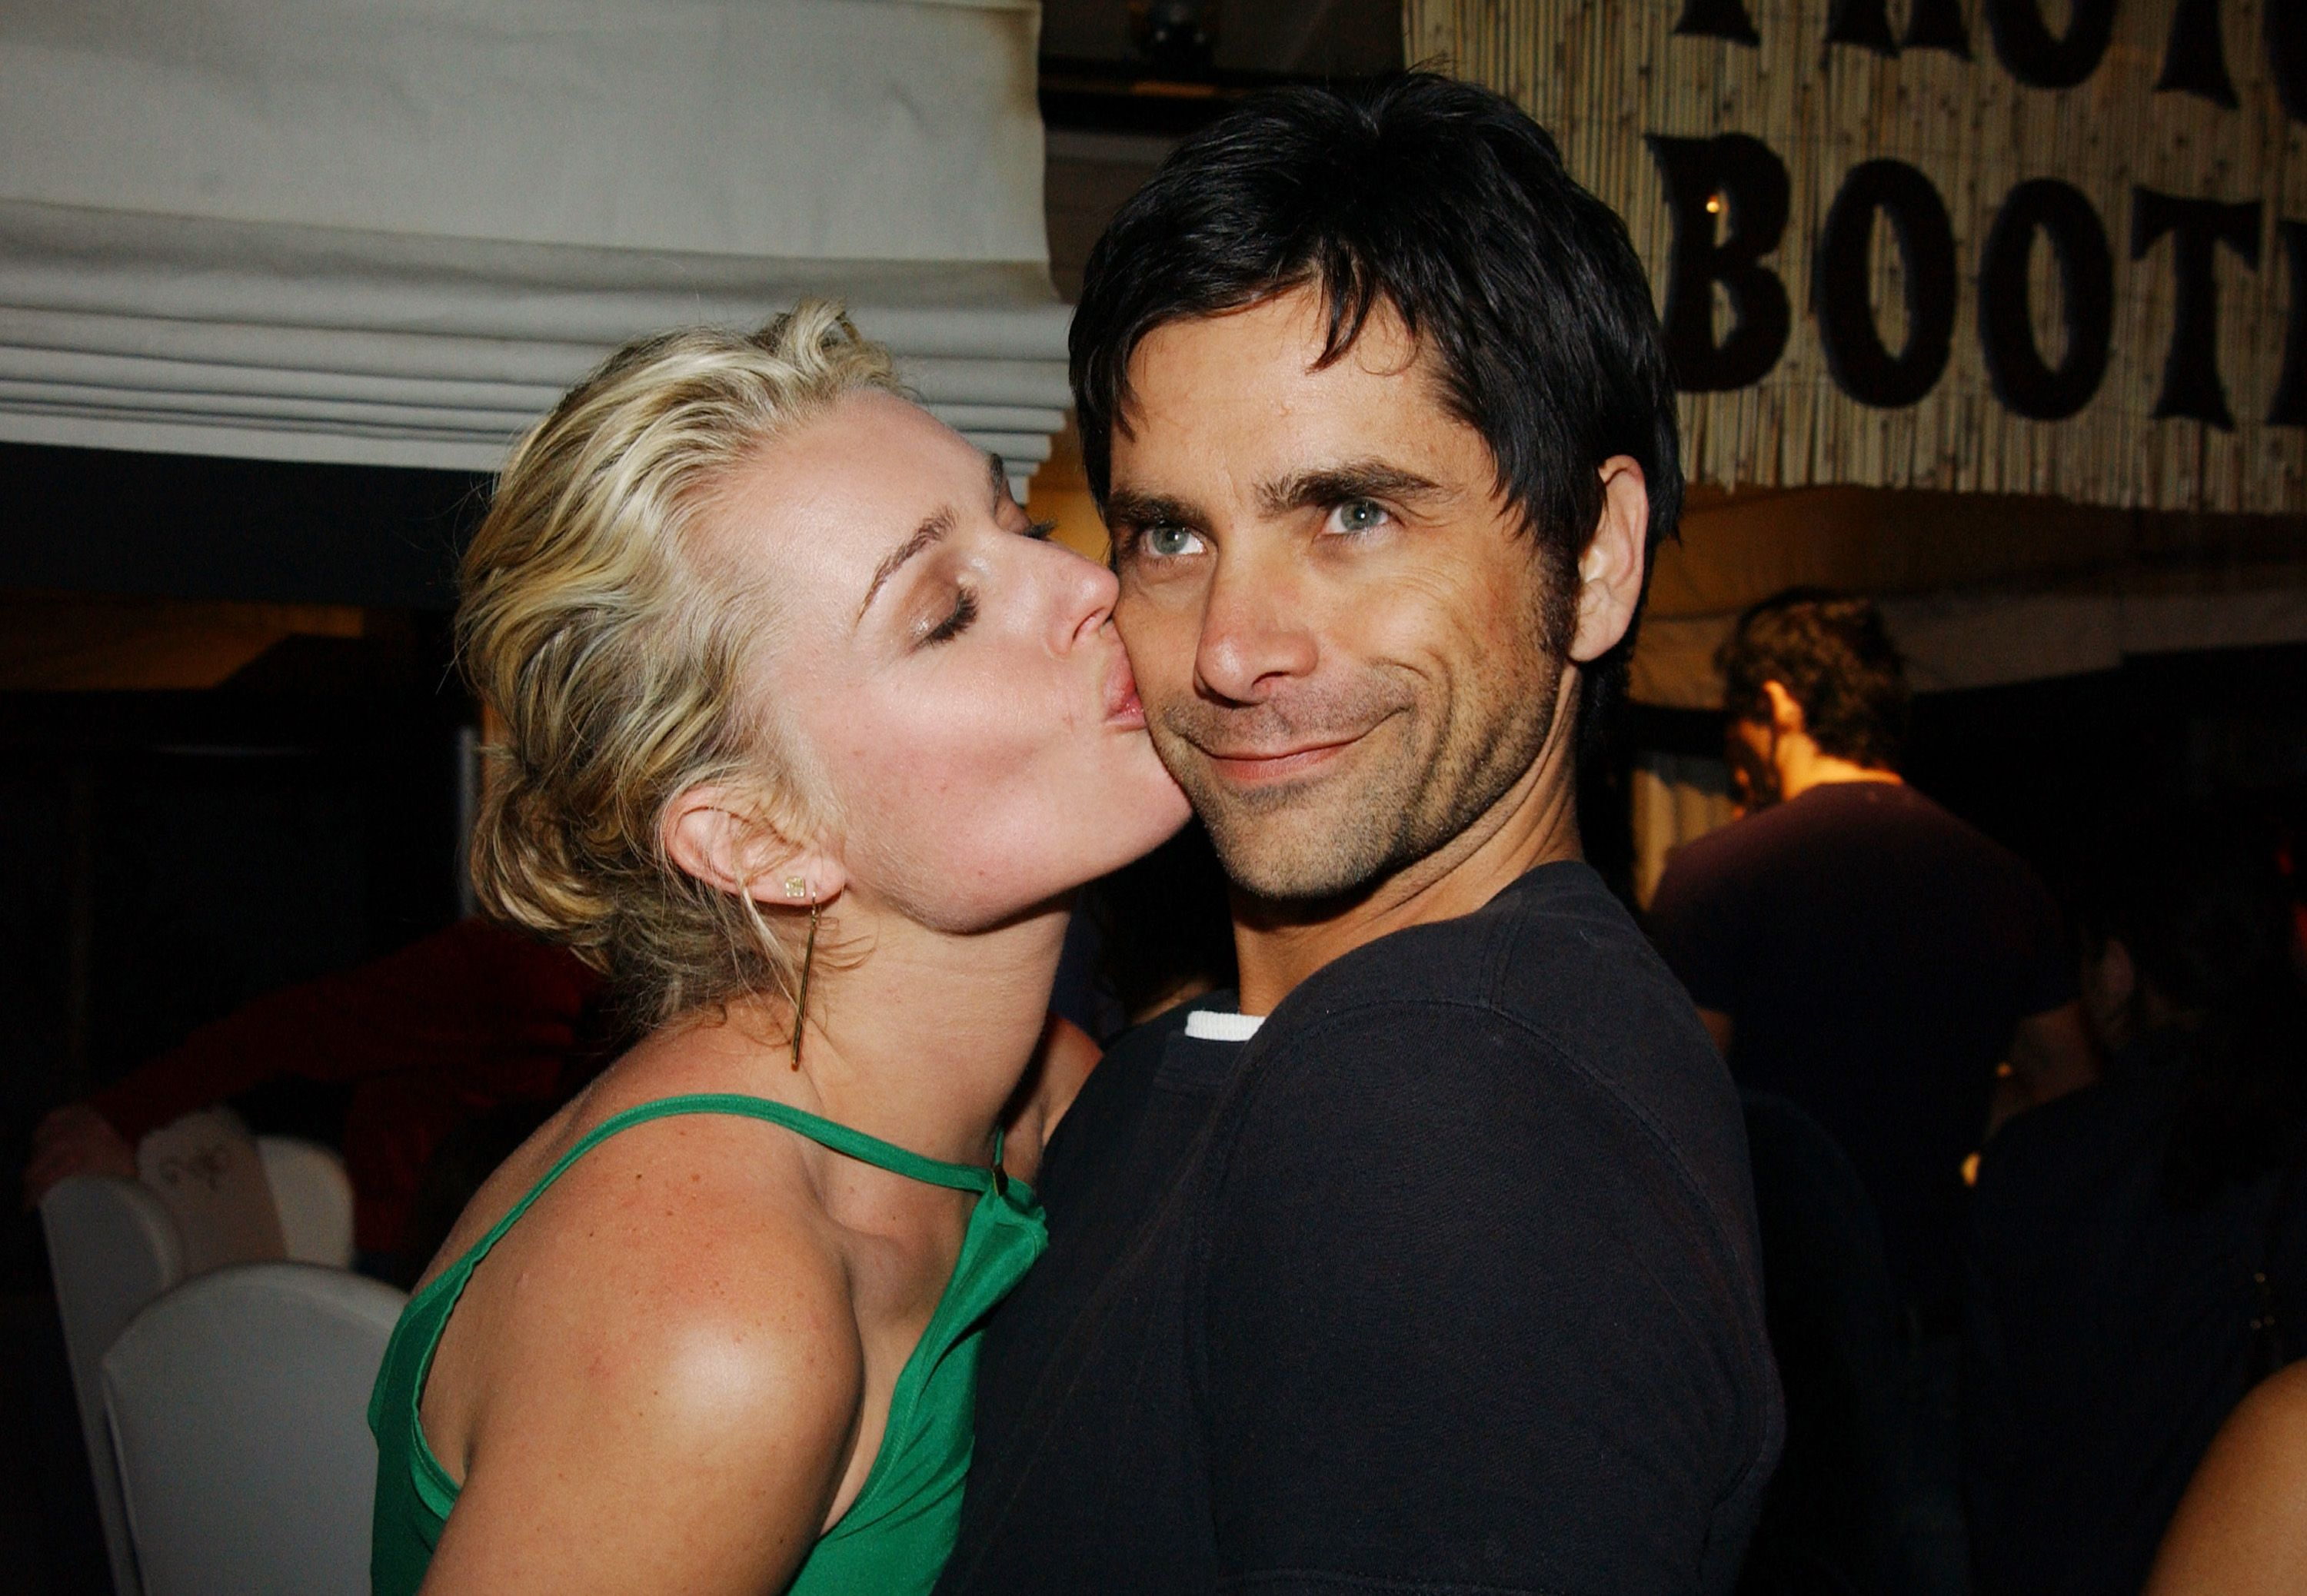 """Rebecca Romijn and John Stamos at the PlayStation 2 """"Bungalow Beach Party"""" in 2003 in Santa Monica, California 